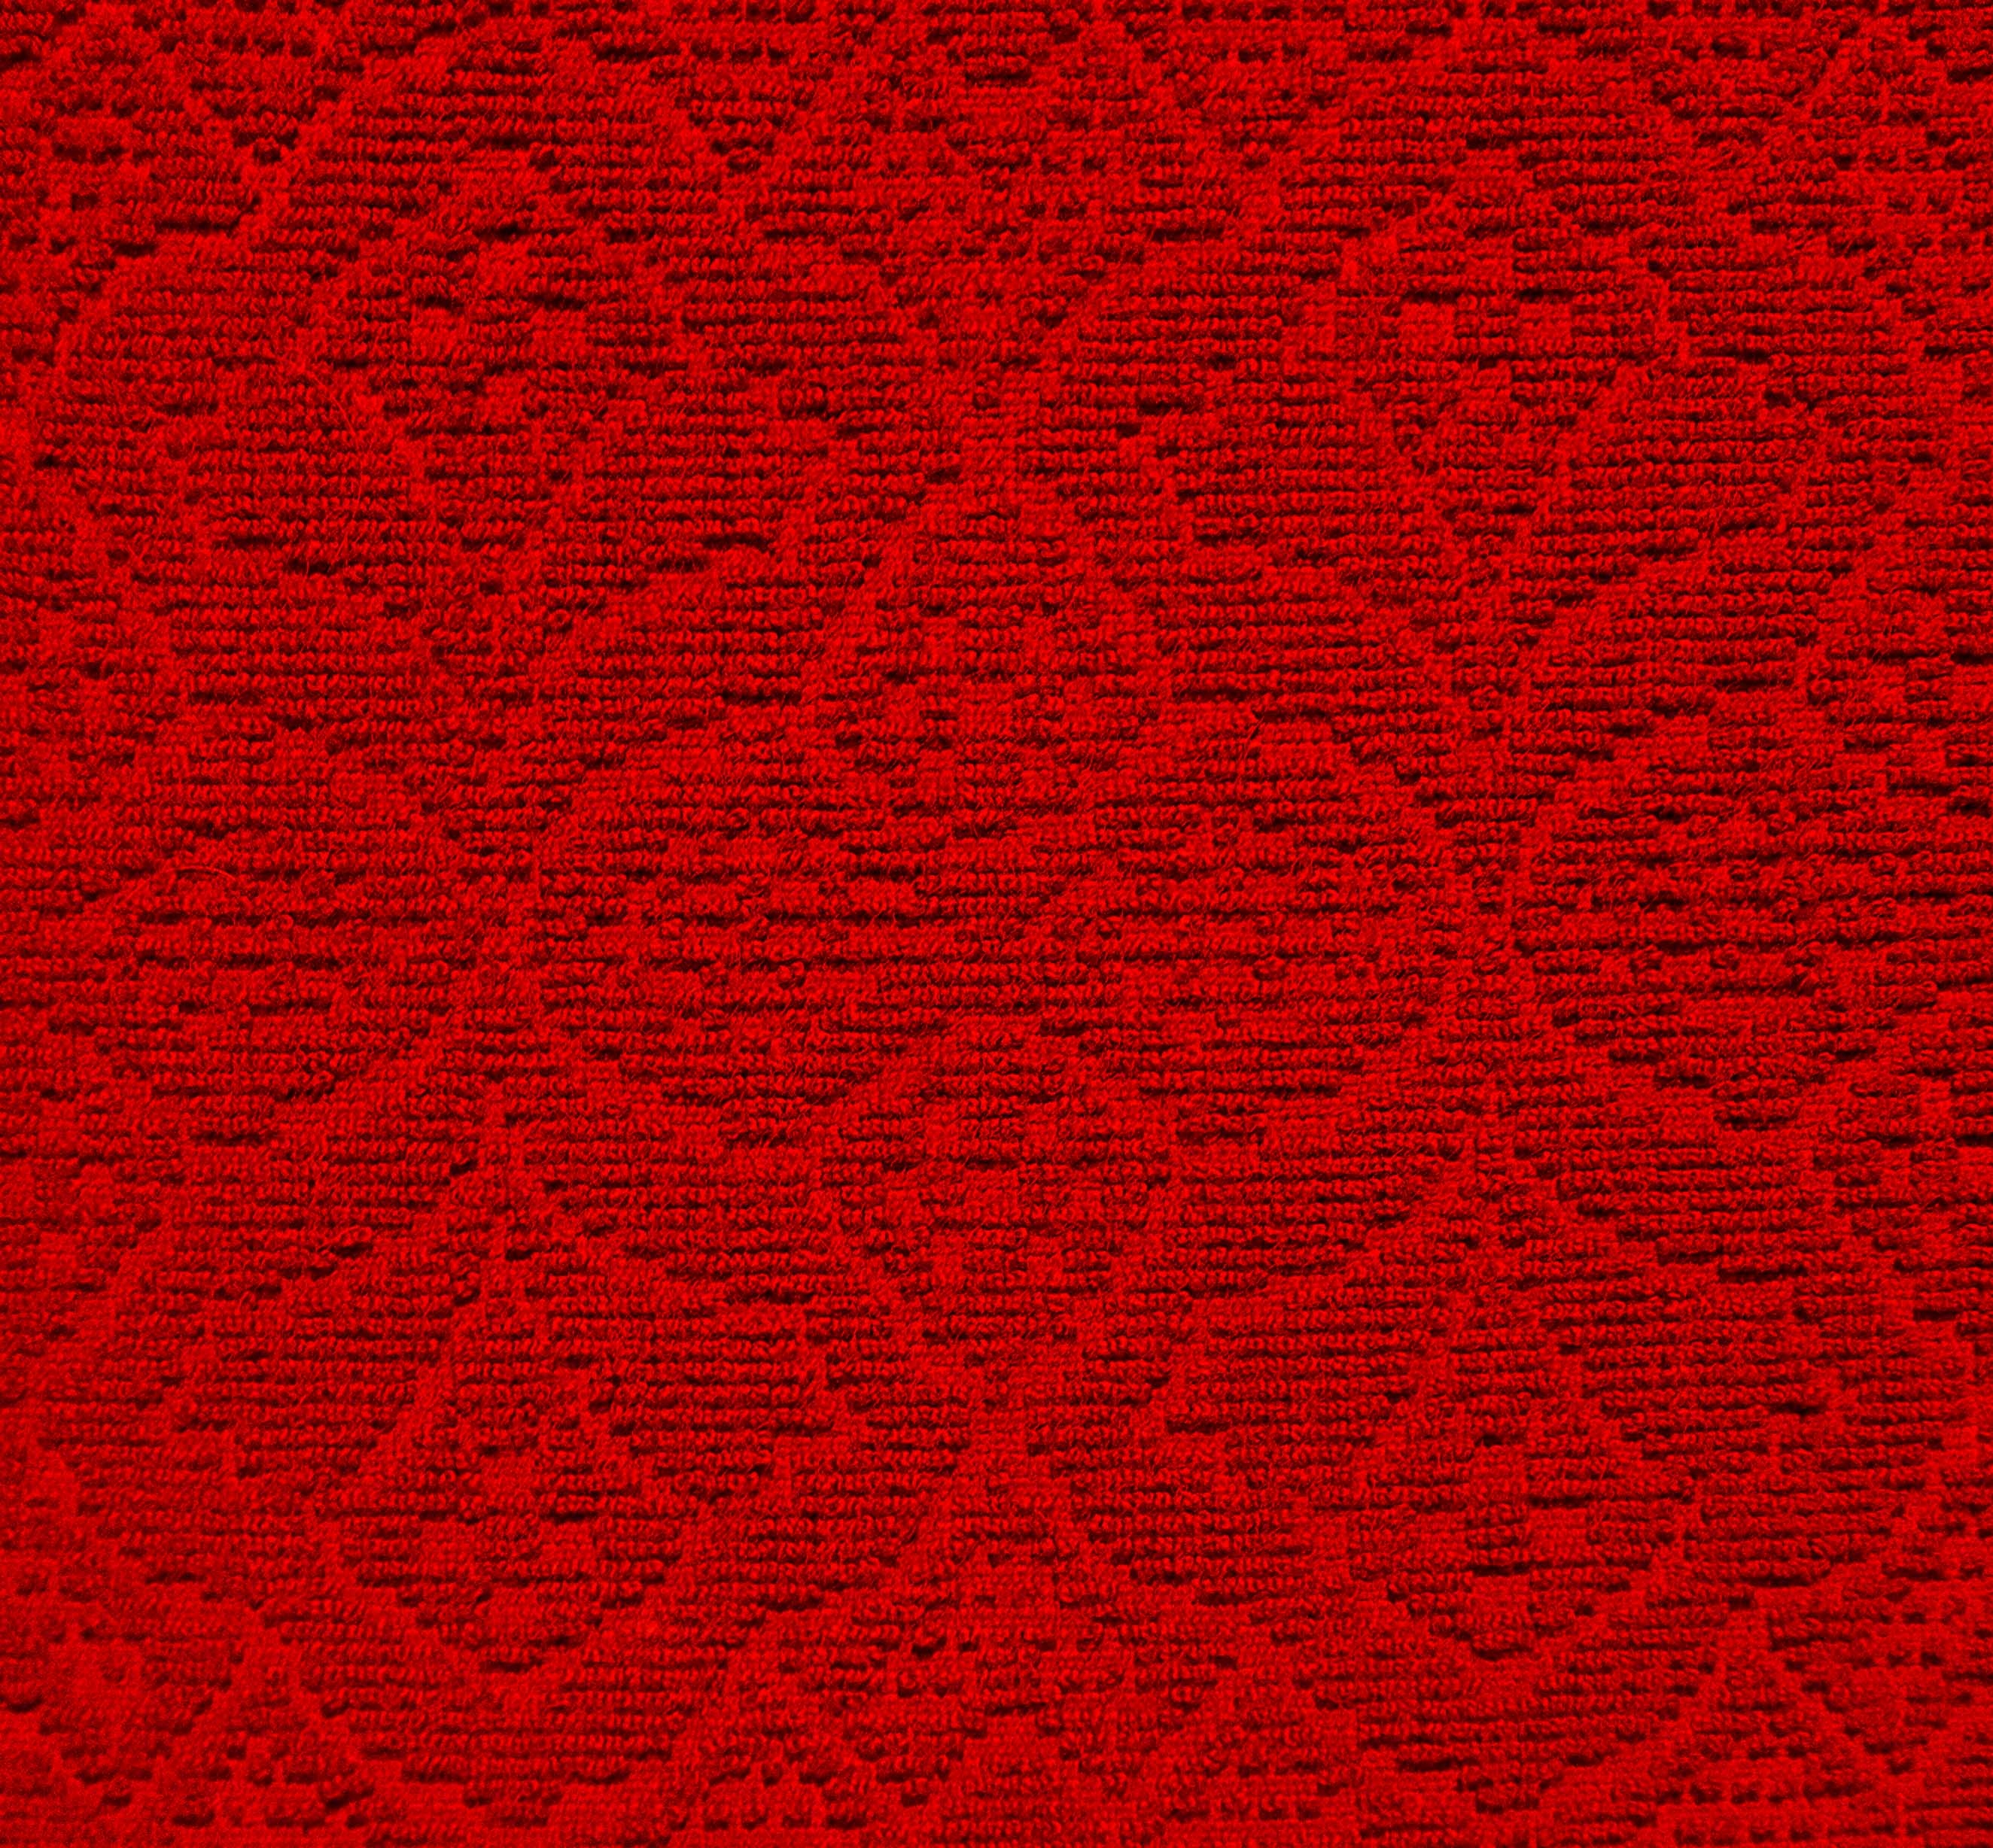 60 red textures seamless textures freecreatives for Fabric pattern